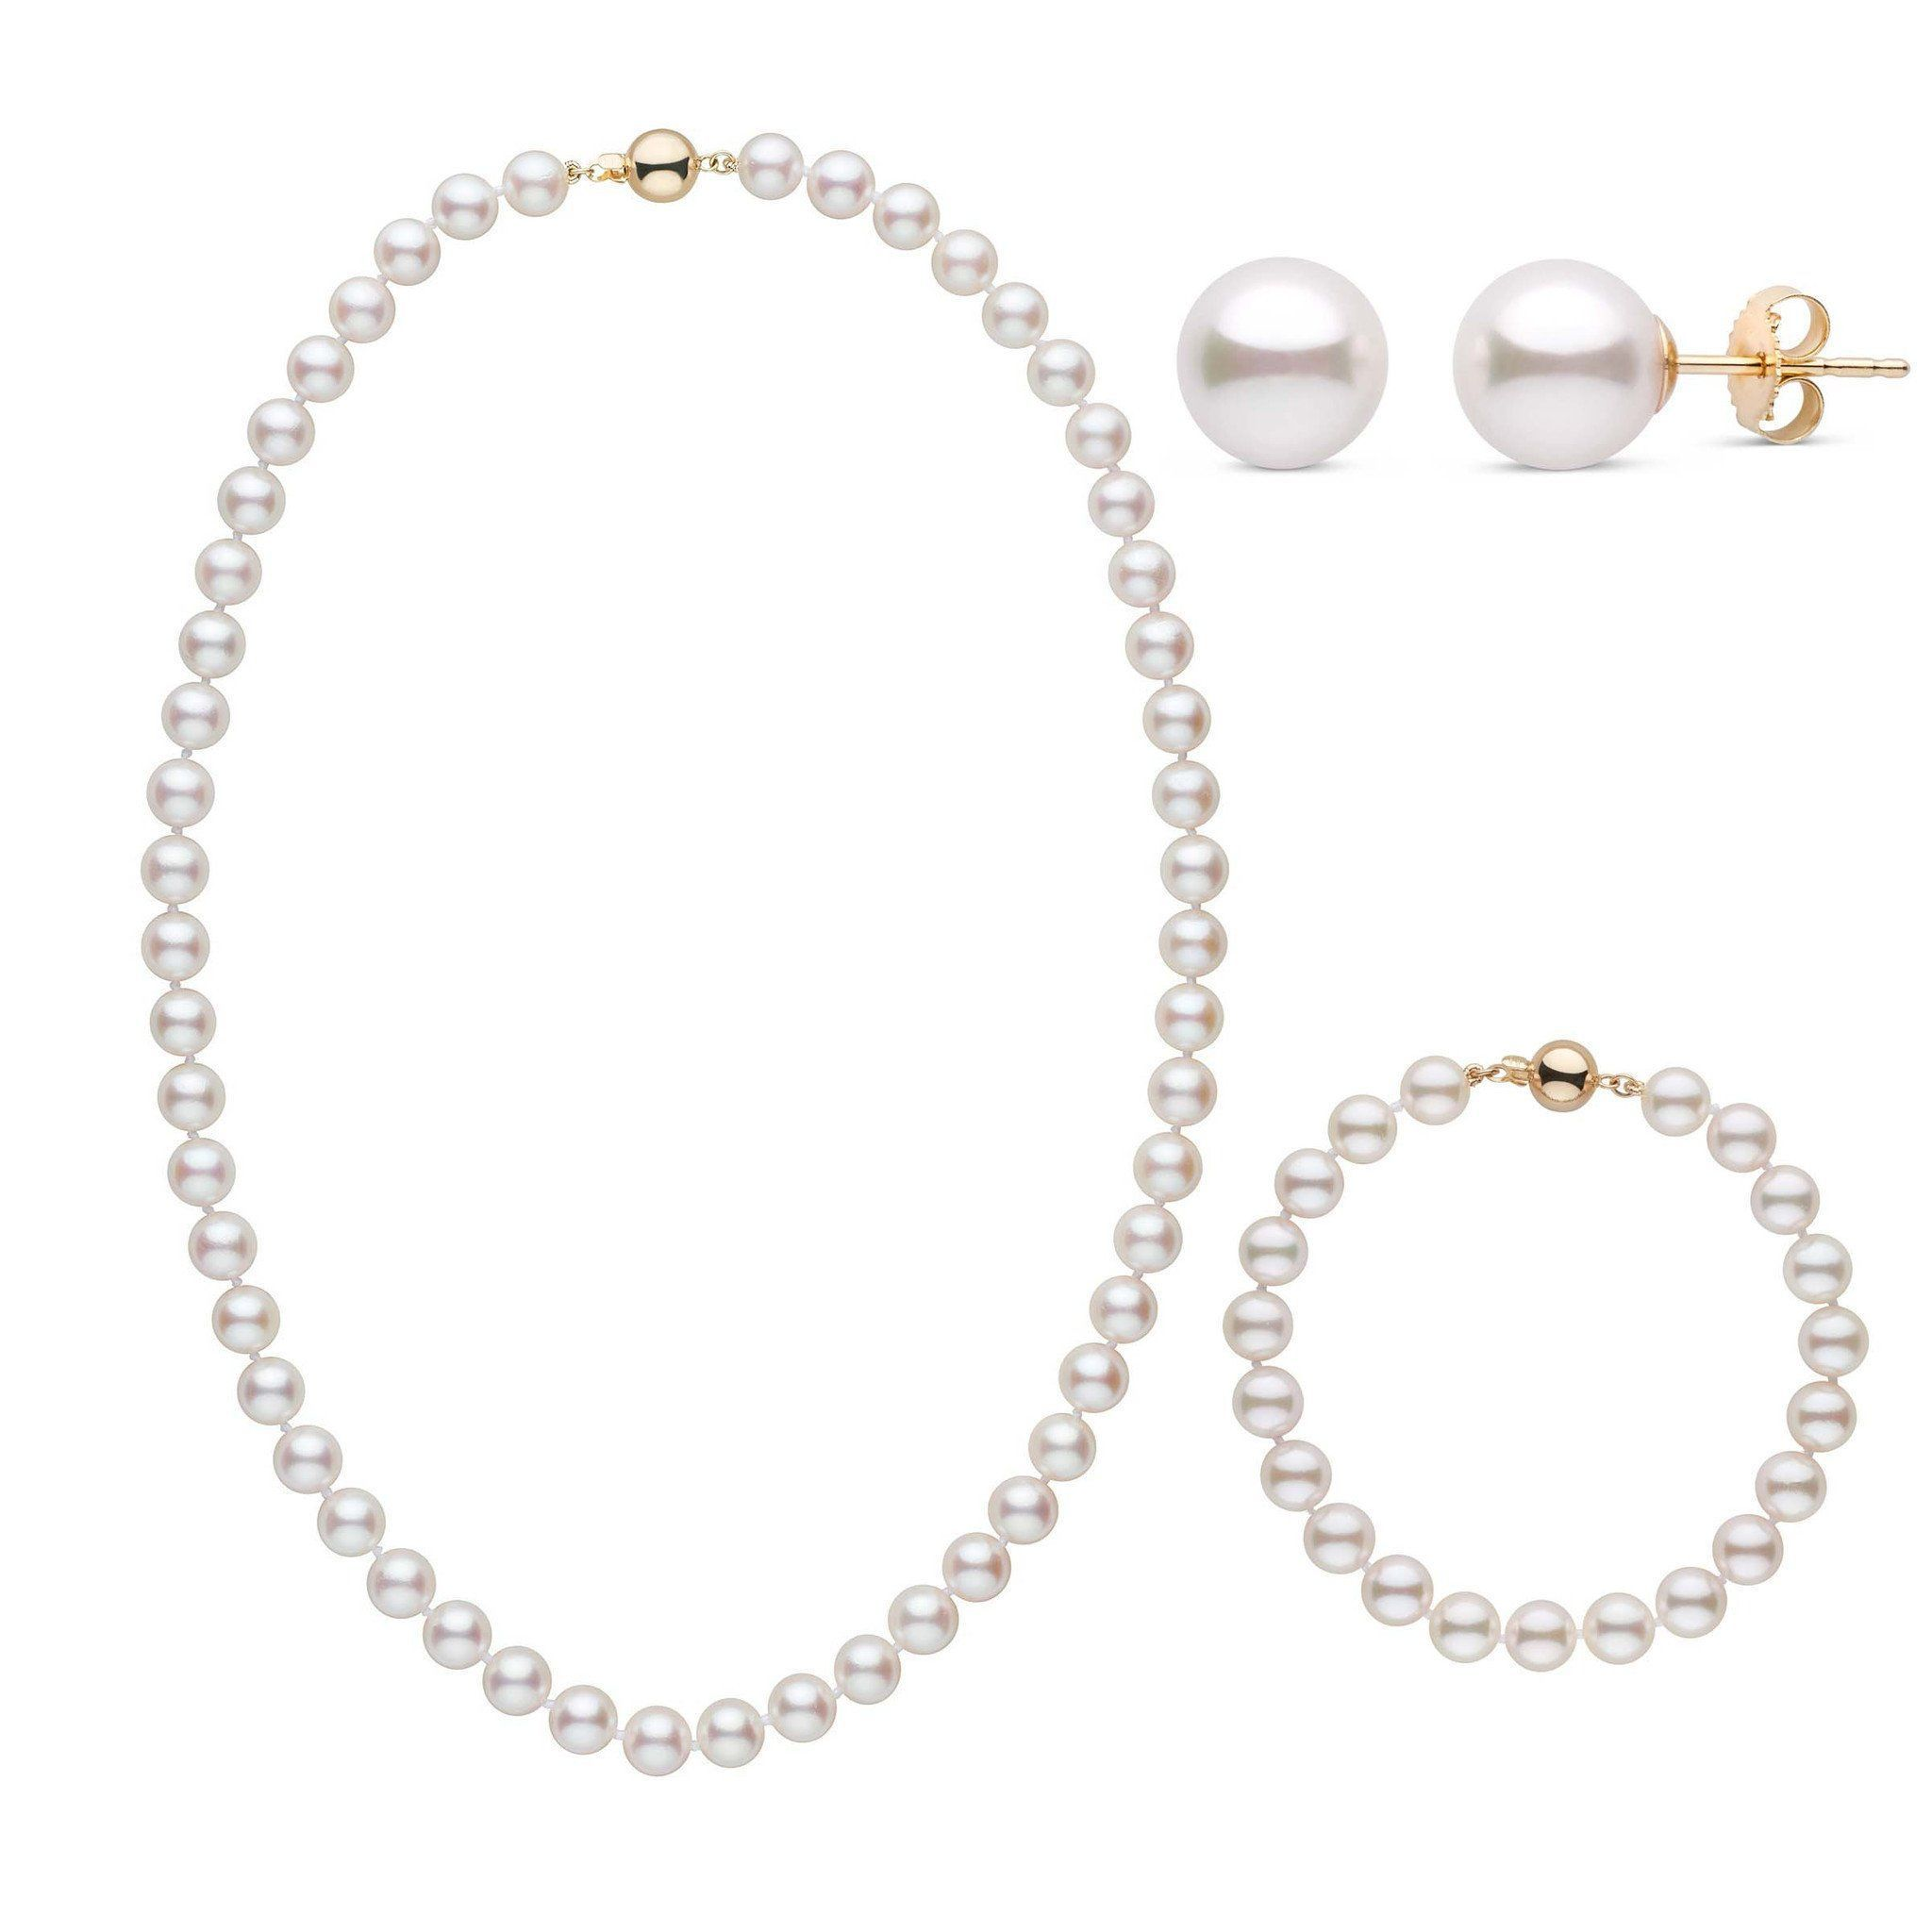 18 Inch 3 Piece Set of 7.5-8.0 mm AA+ White Akoya Pearls